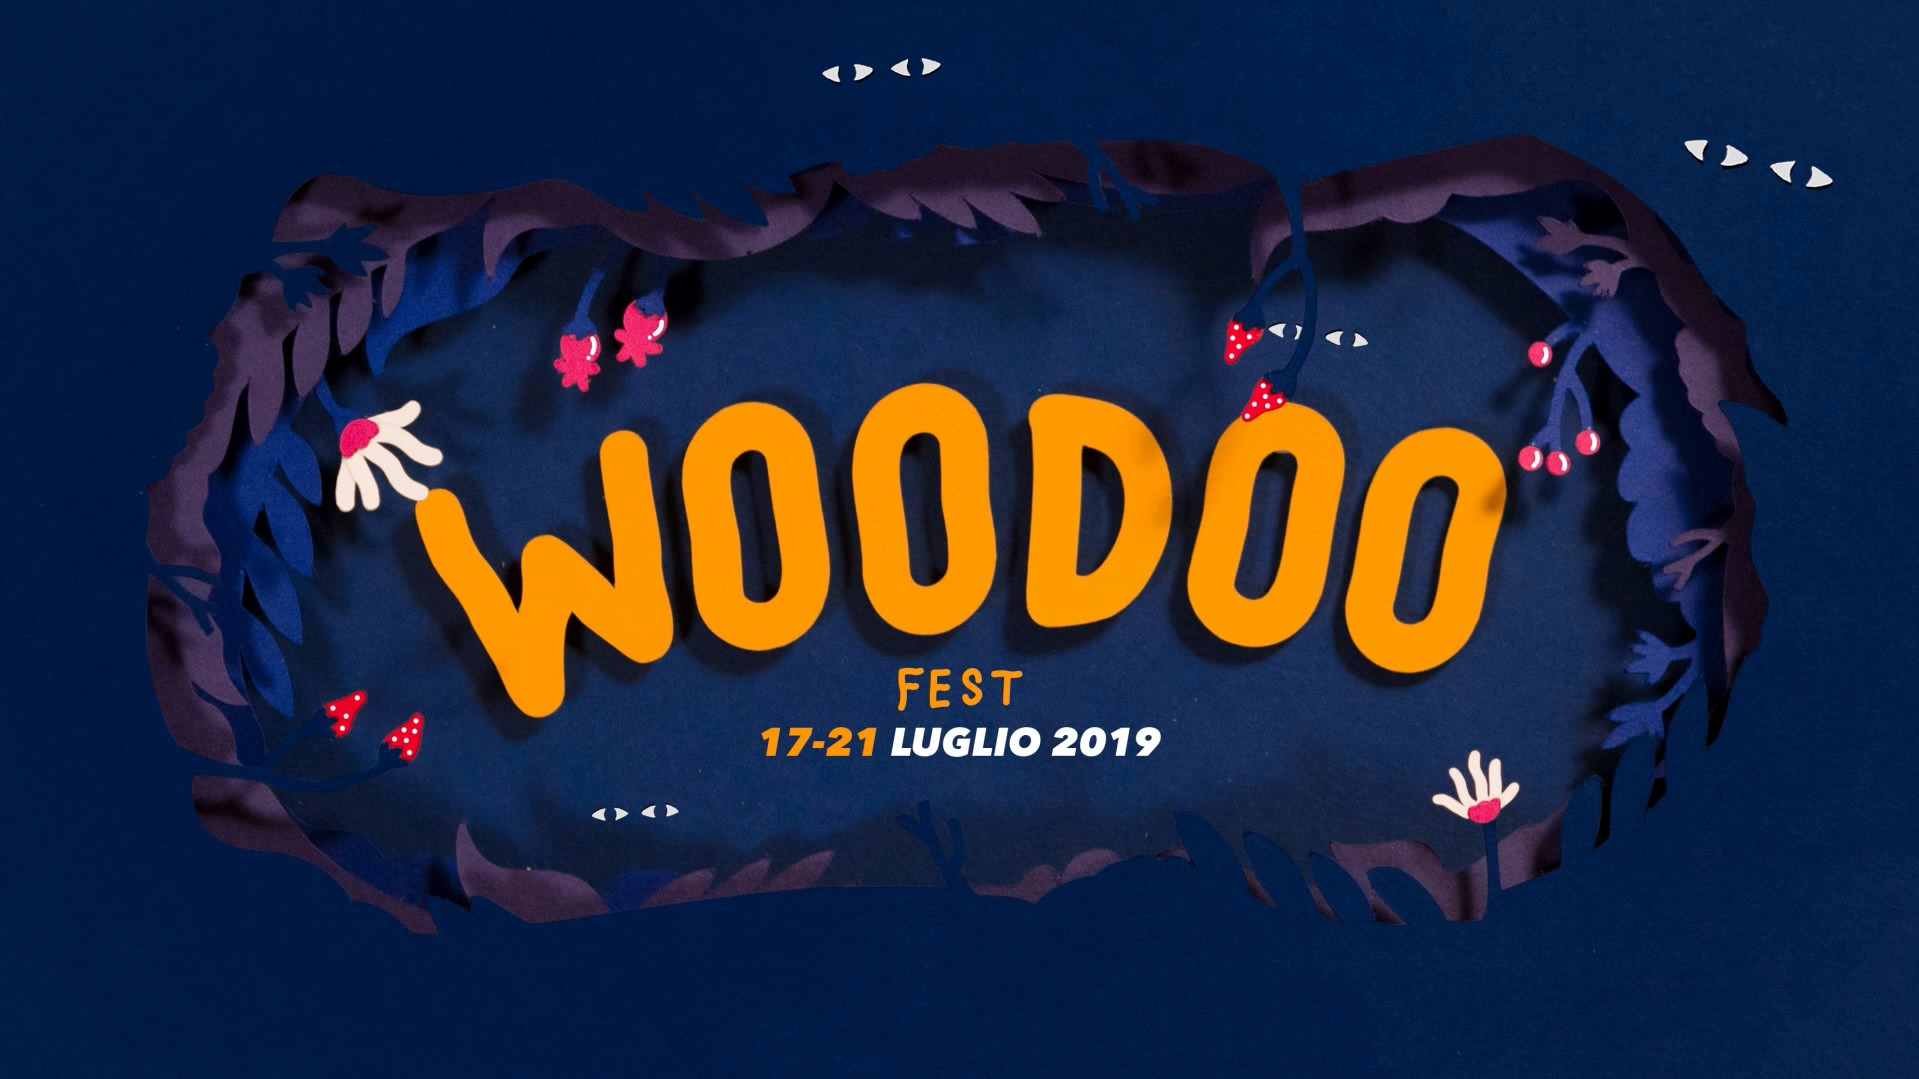 woodoo-fest-launch-2019.jpg